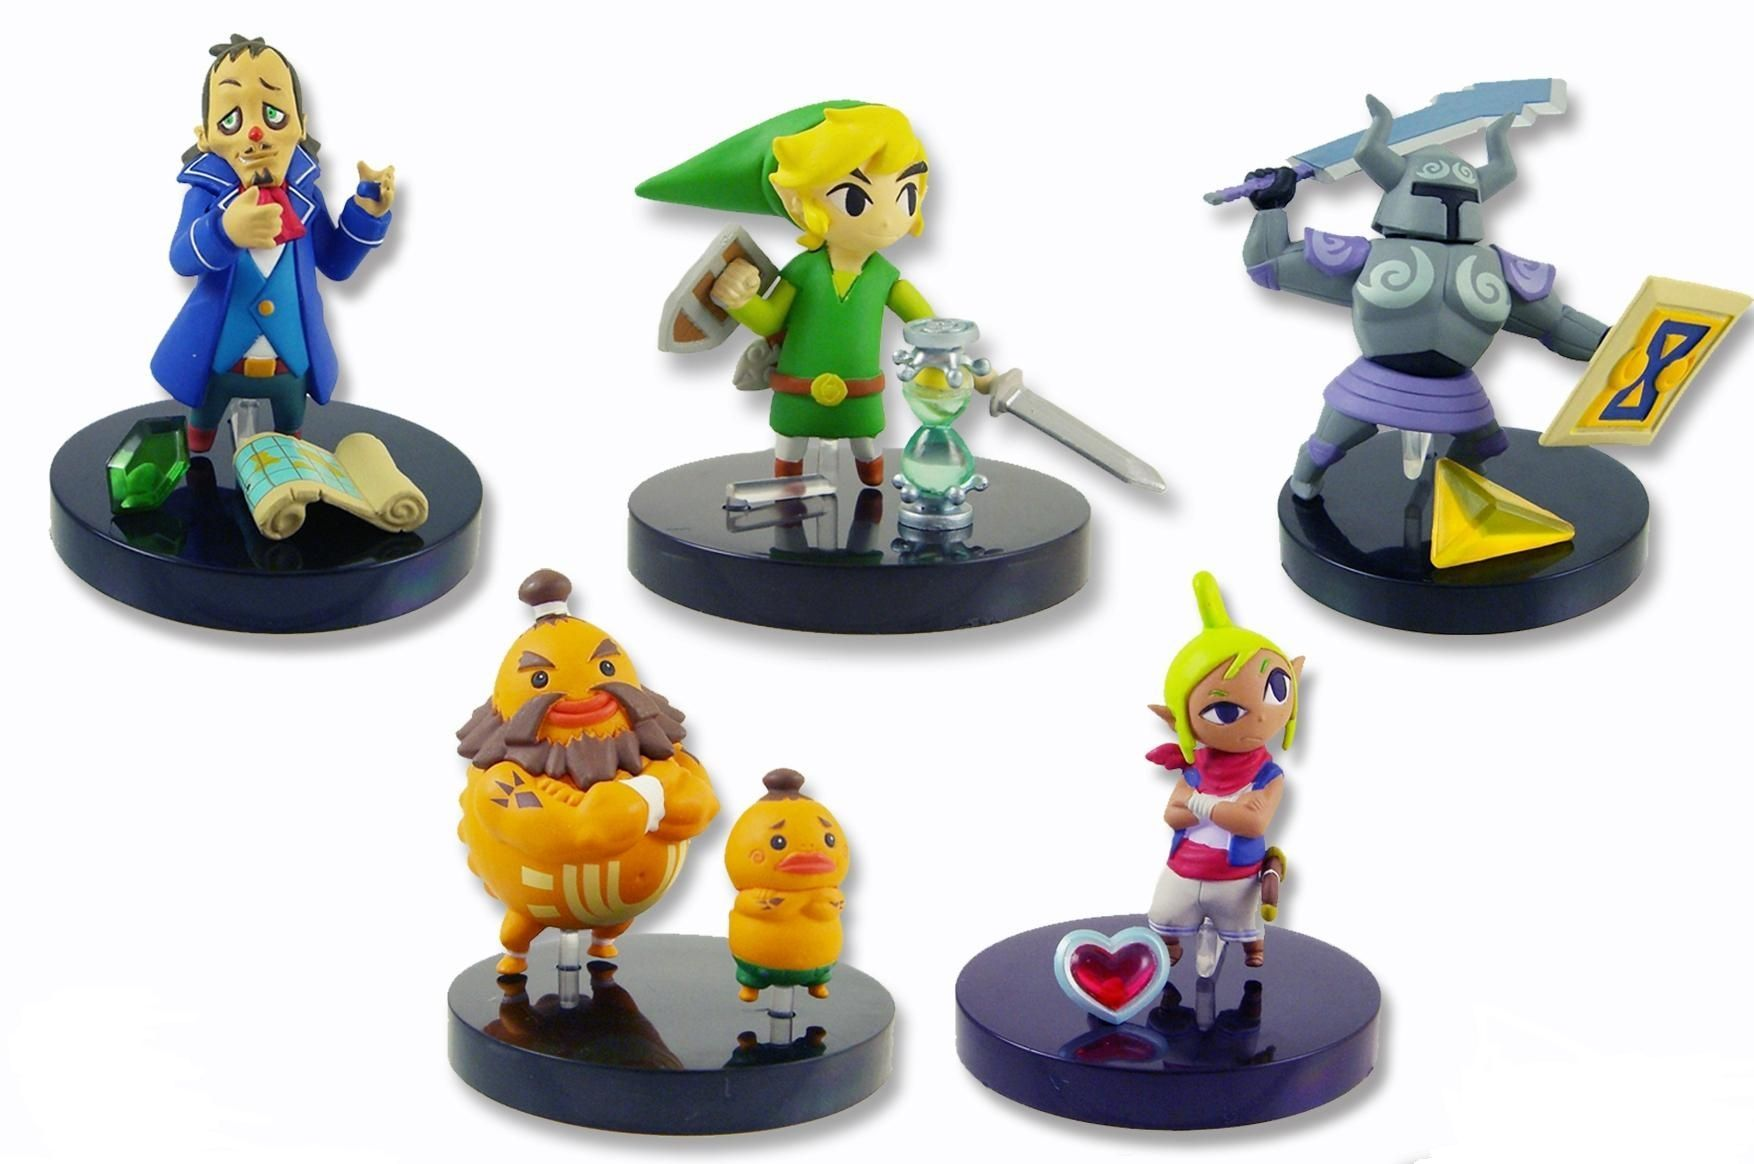 Zelda Phantom Hourglass buildable figures – pack of 3